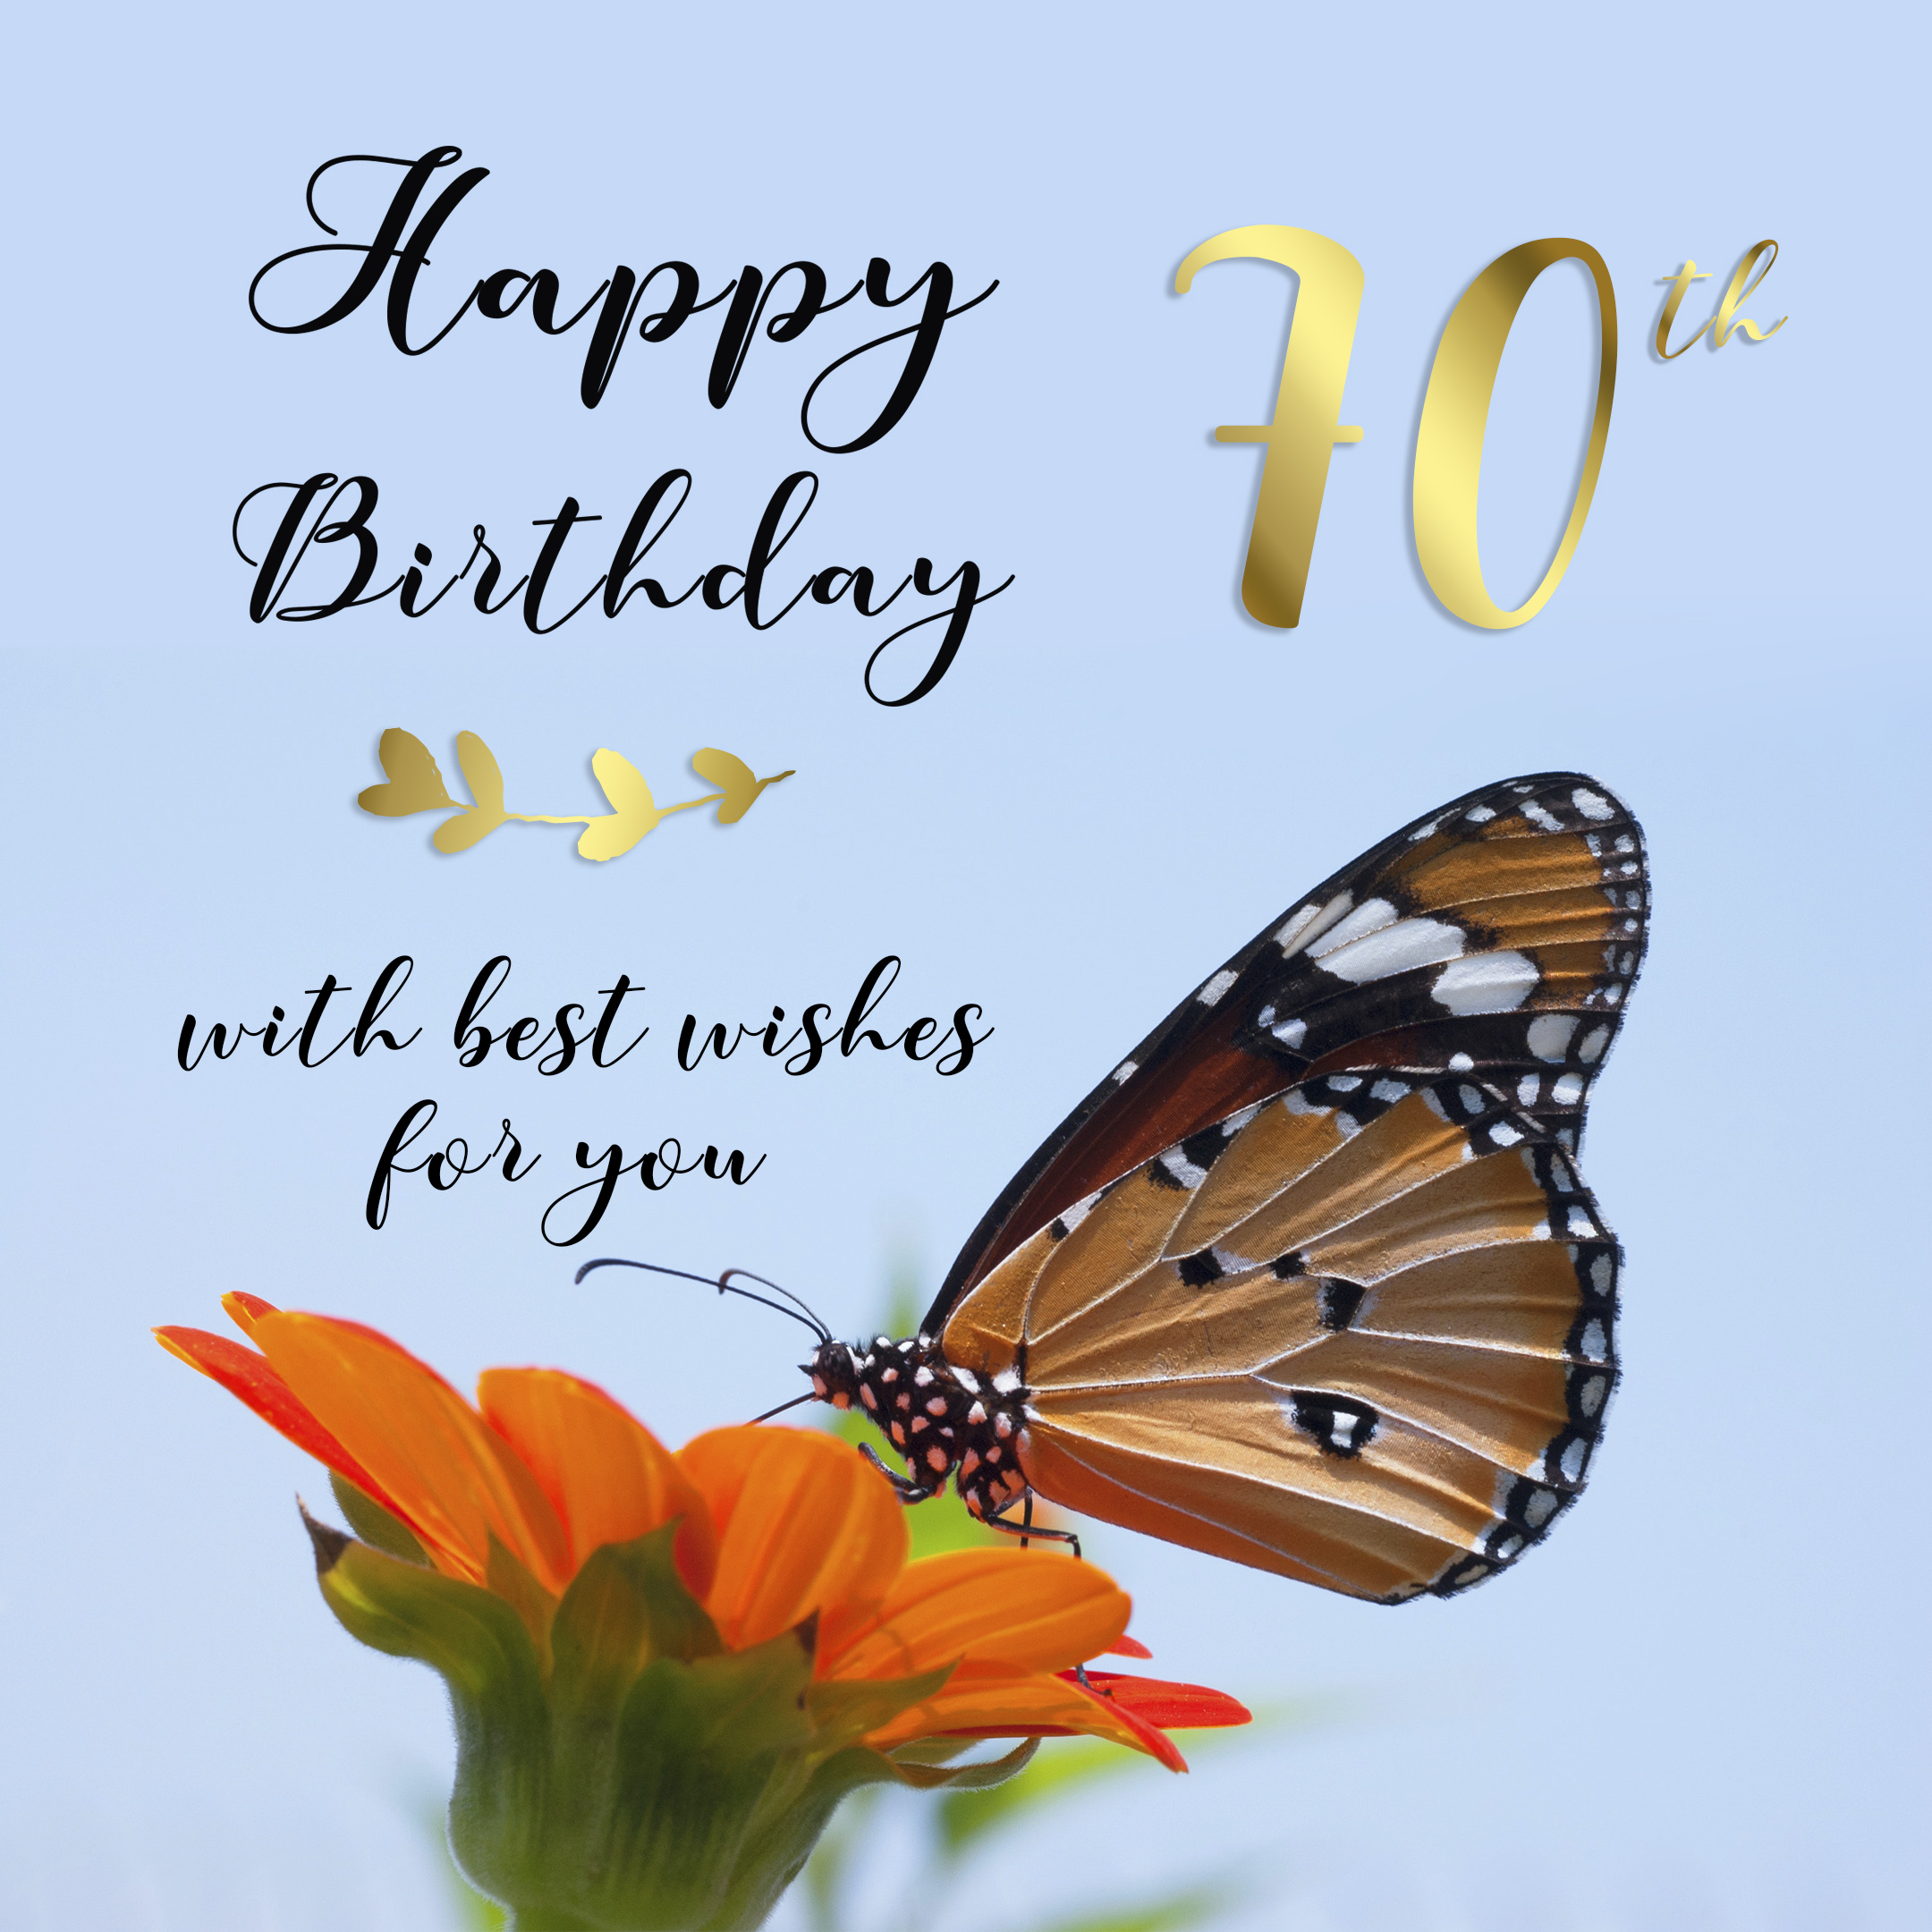 Free 70th Years Happy Birthday Image With Butterfly - birthdayimg.com